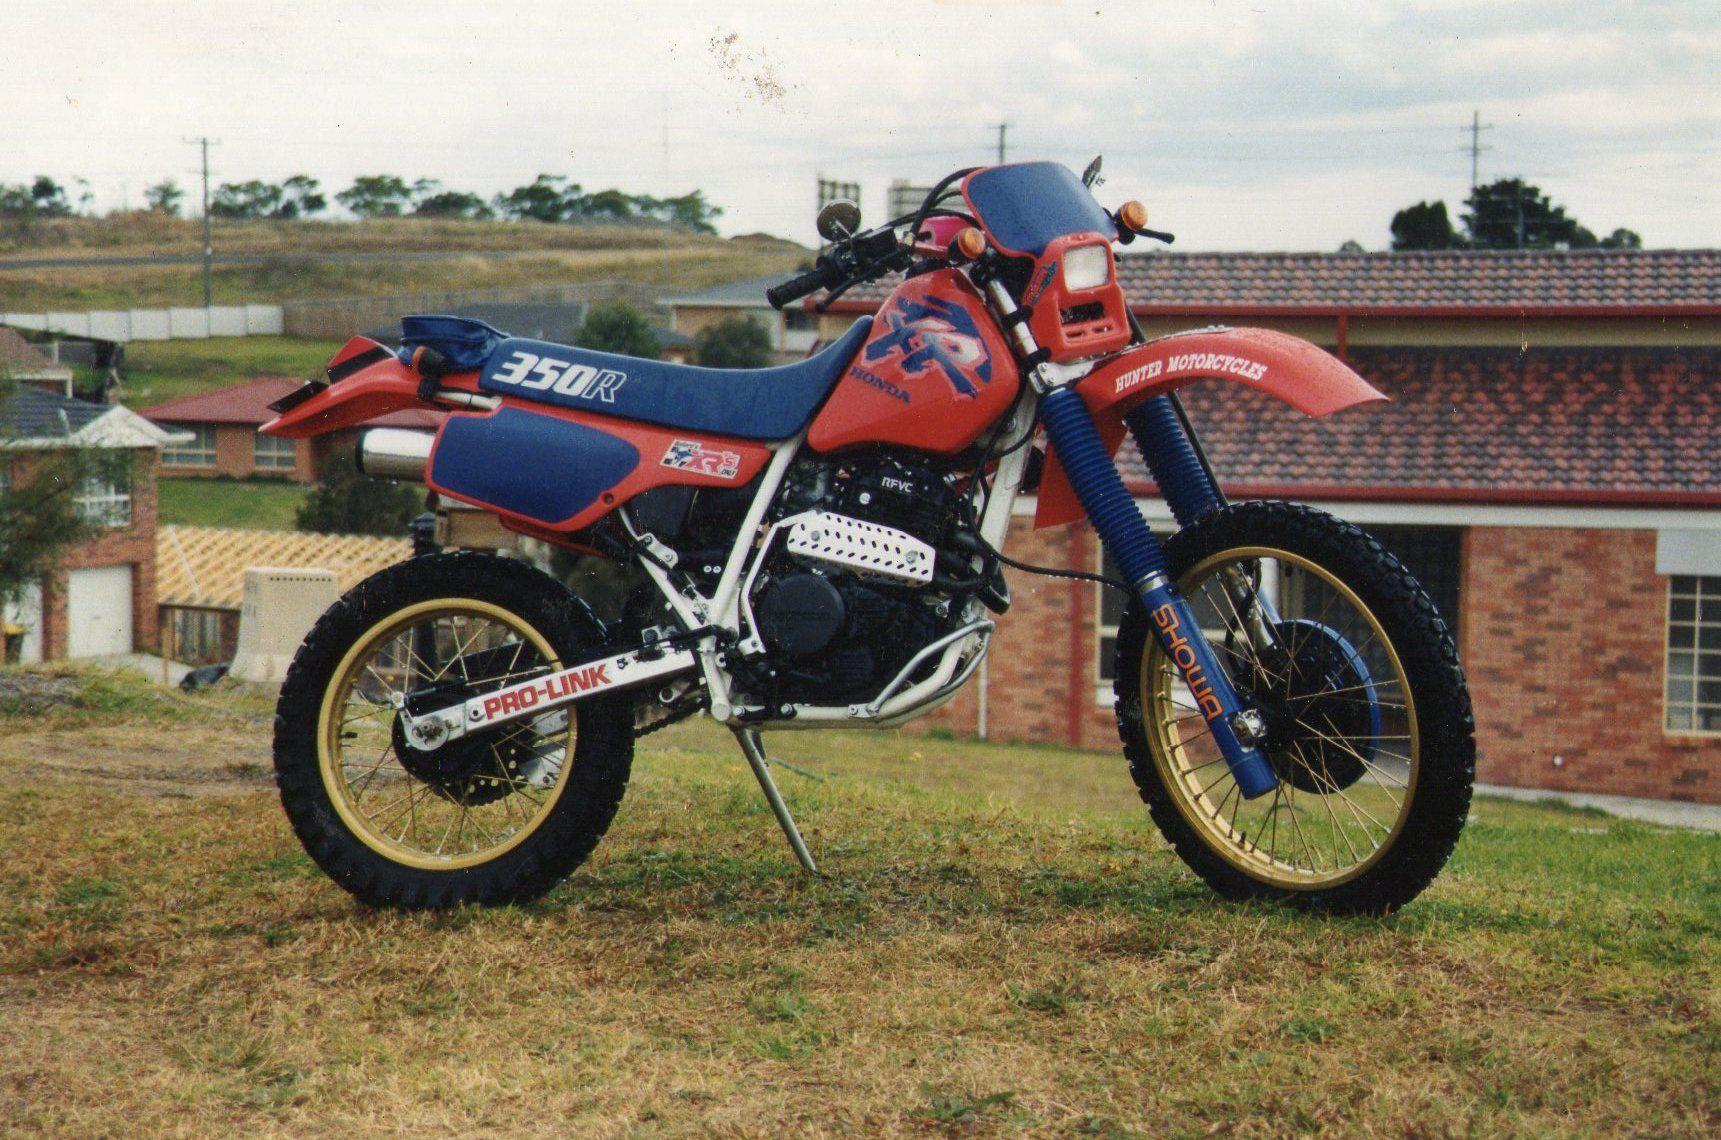 Best Dirt Bike Honda Ever Built This One I Should Not Have Sold Cool Dirt Bikes Dirtbikes Bike